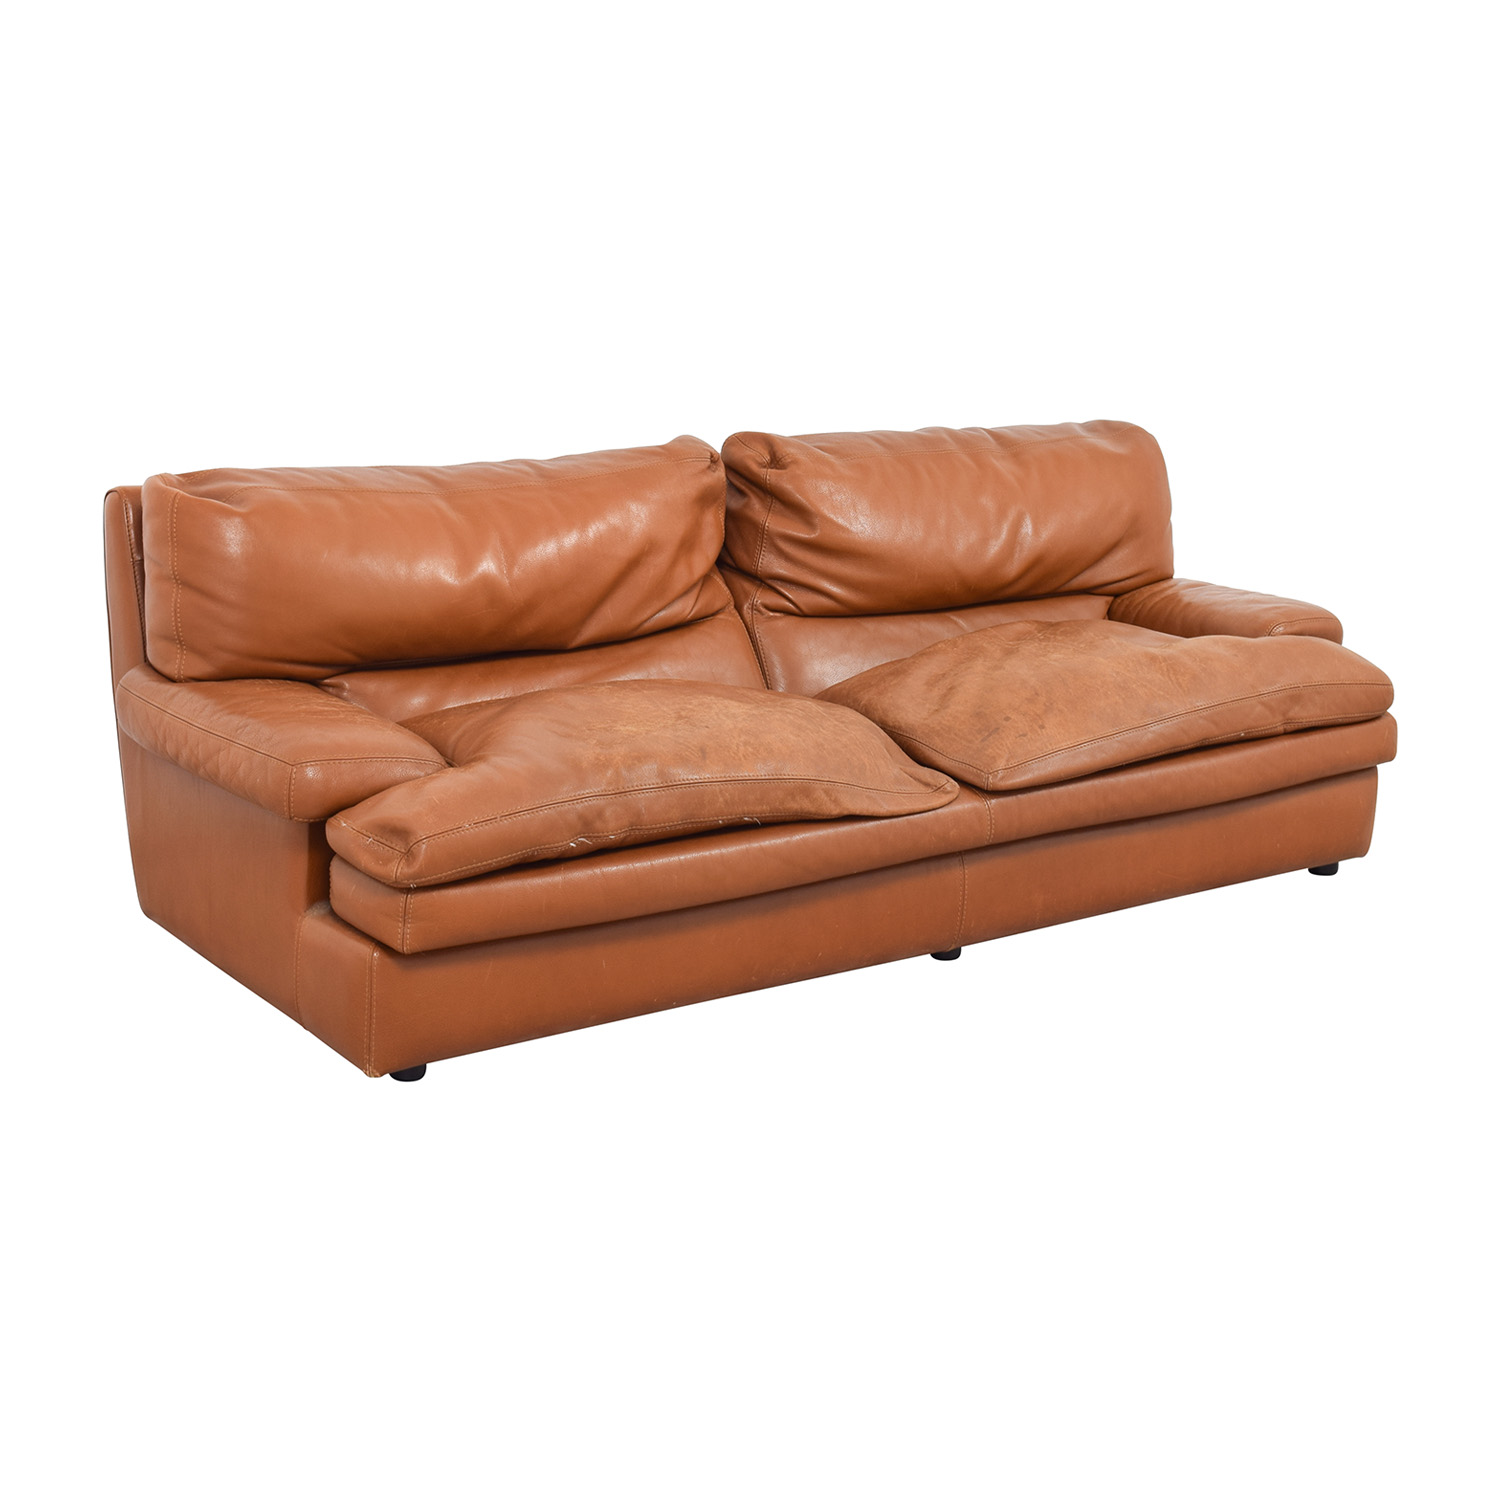 Solde Roche Bobois 81% Off - Roche Bobois Roche Bobois Burnt Orange Leather